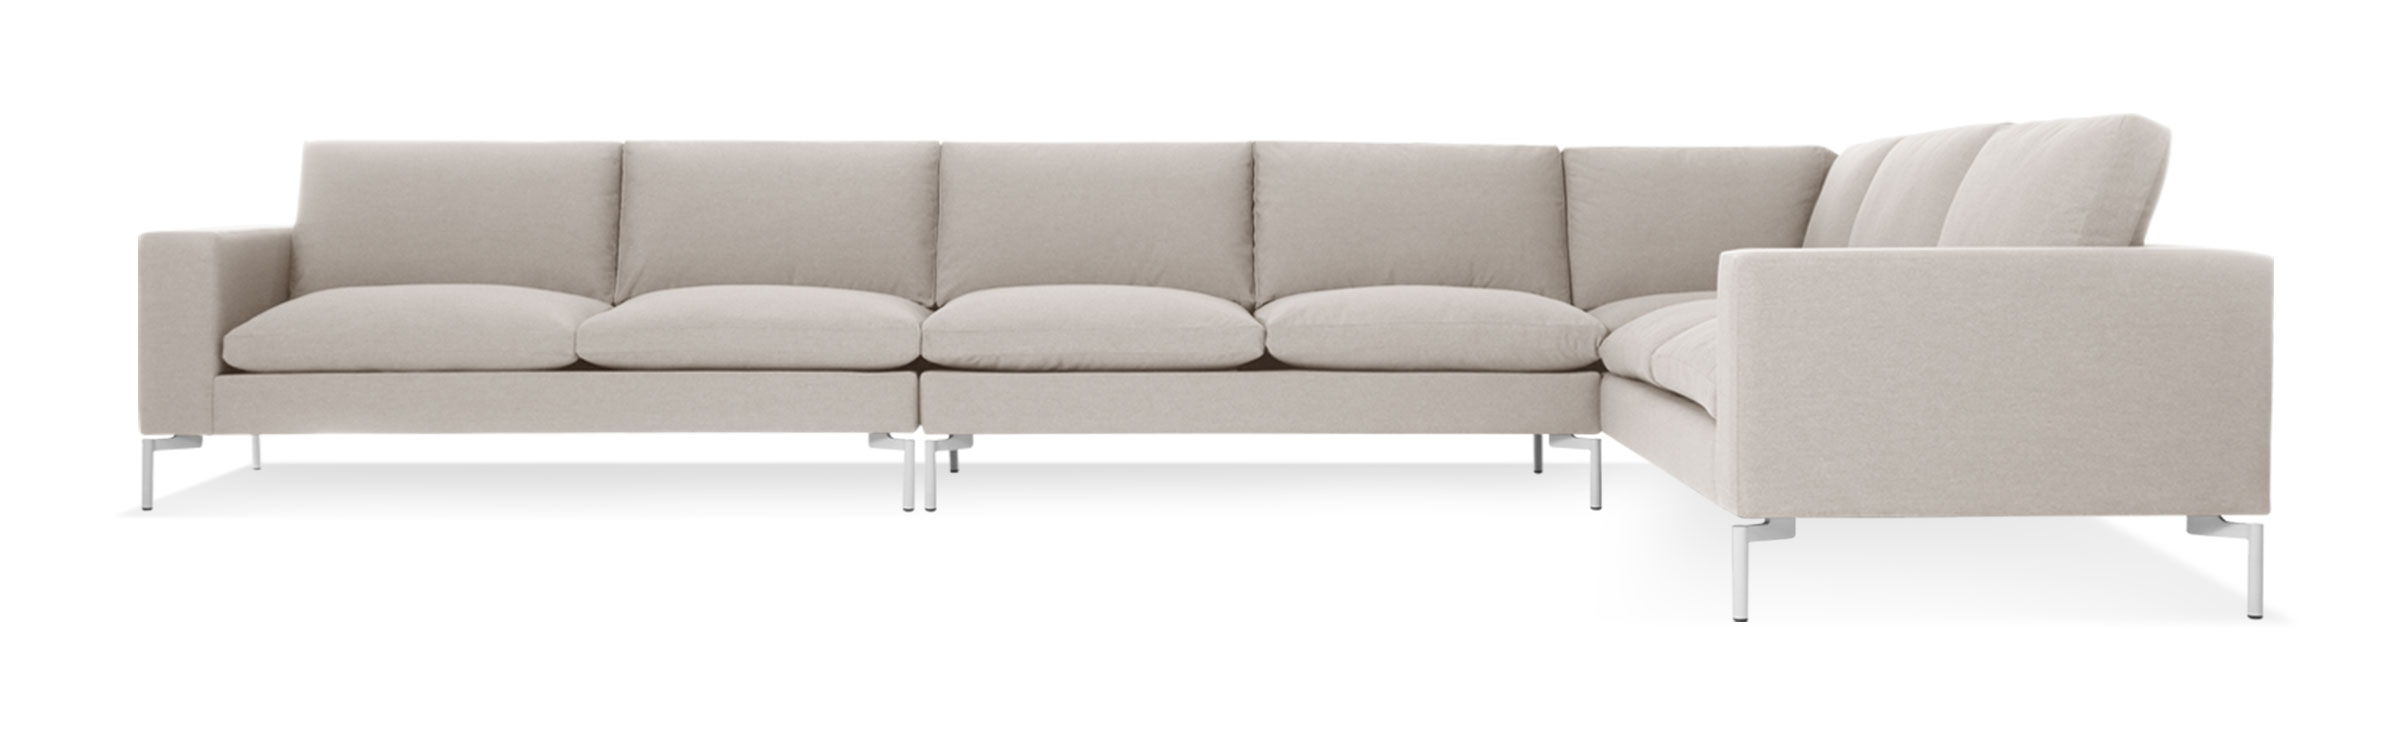 Furniture : X Large Sectional Sofa Recliner Design Corner Couch Throughout Latest 110X90 Sectional Sofas (View 13 of 20)